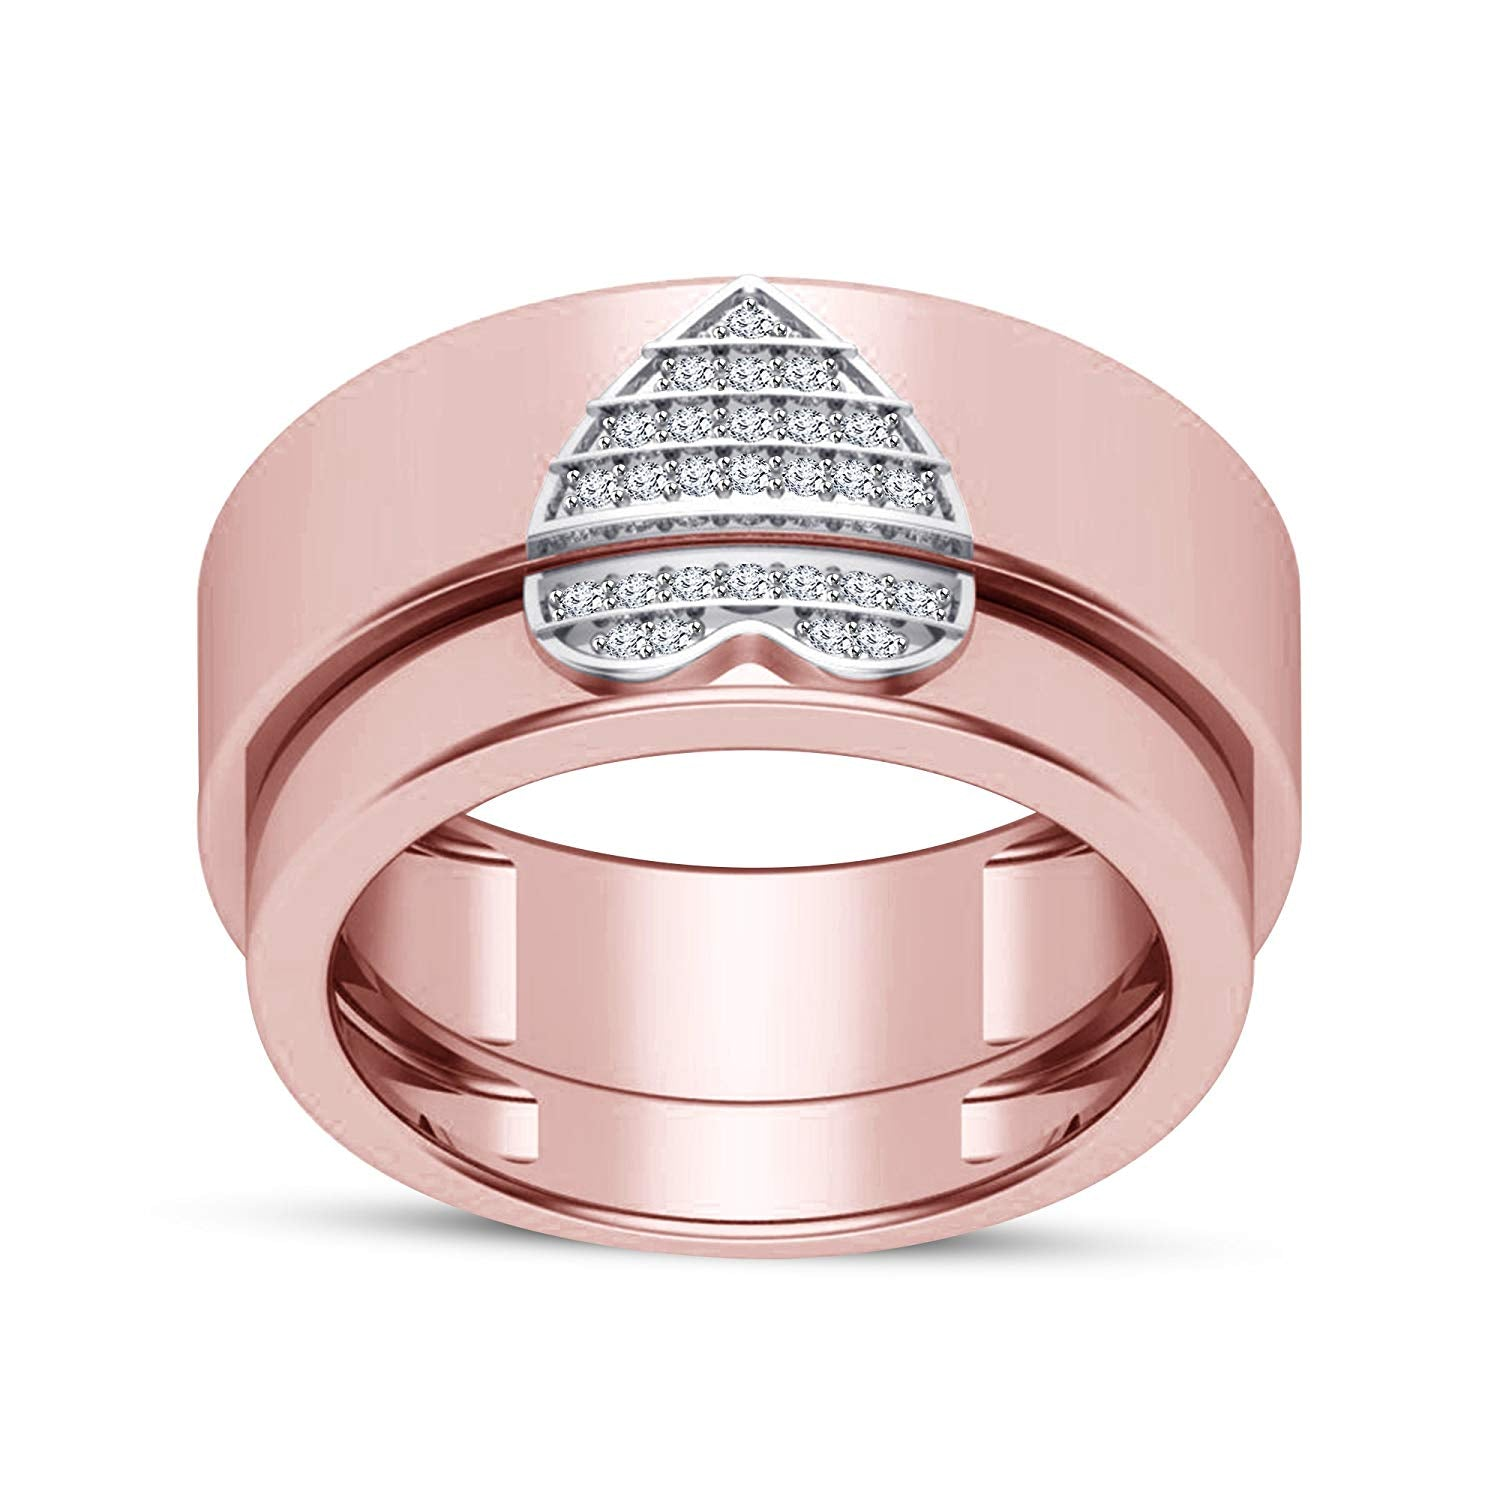 049aeec07d atjewels 18K Rose Gold Plated .925 Silver White Diamond Couple Heart ...